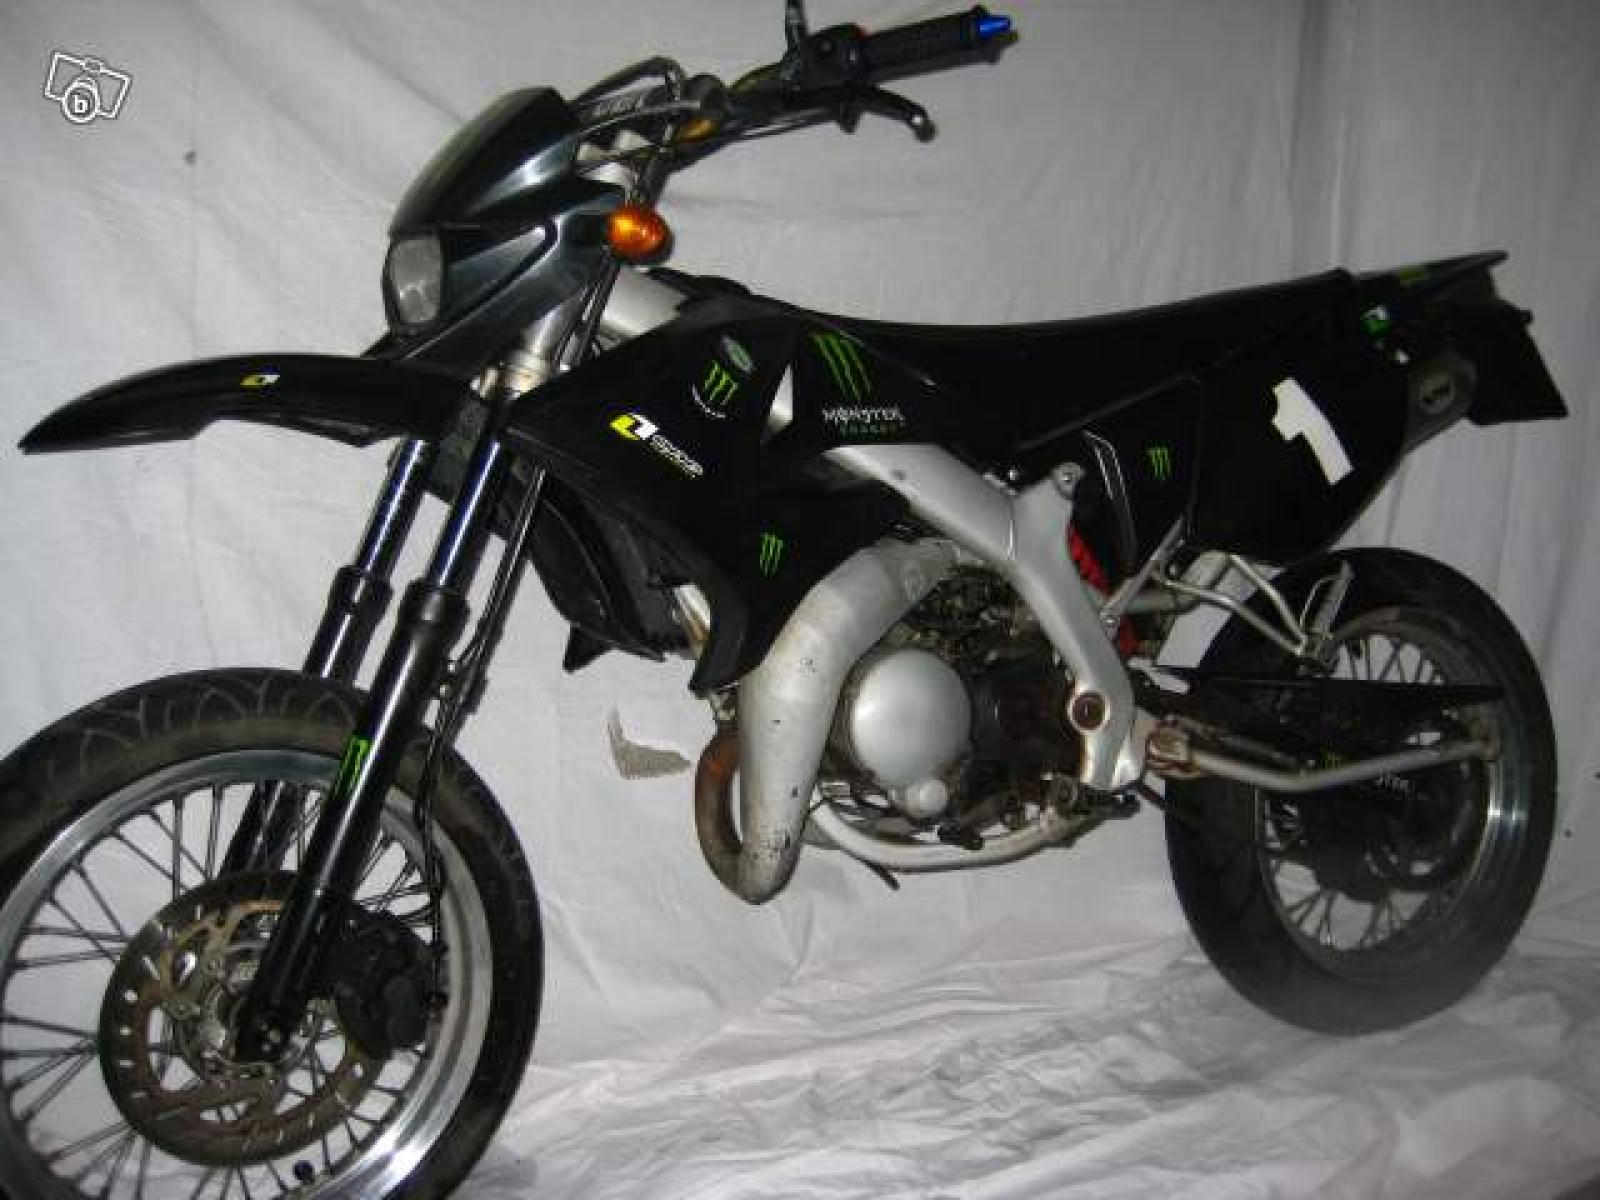 2004 yamaha dt 50 supermotard moto zombdrive com. Black Bedroom Furniture Sets. Home Design Ideas